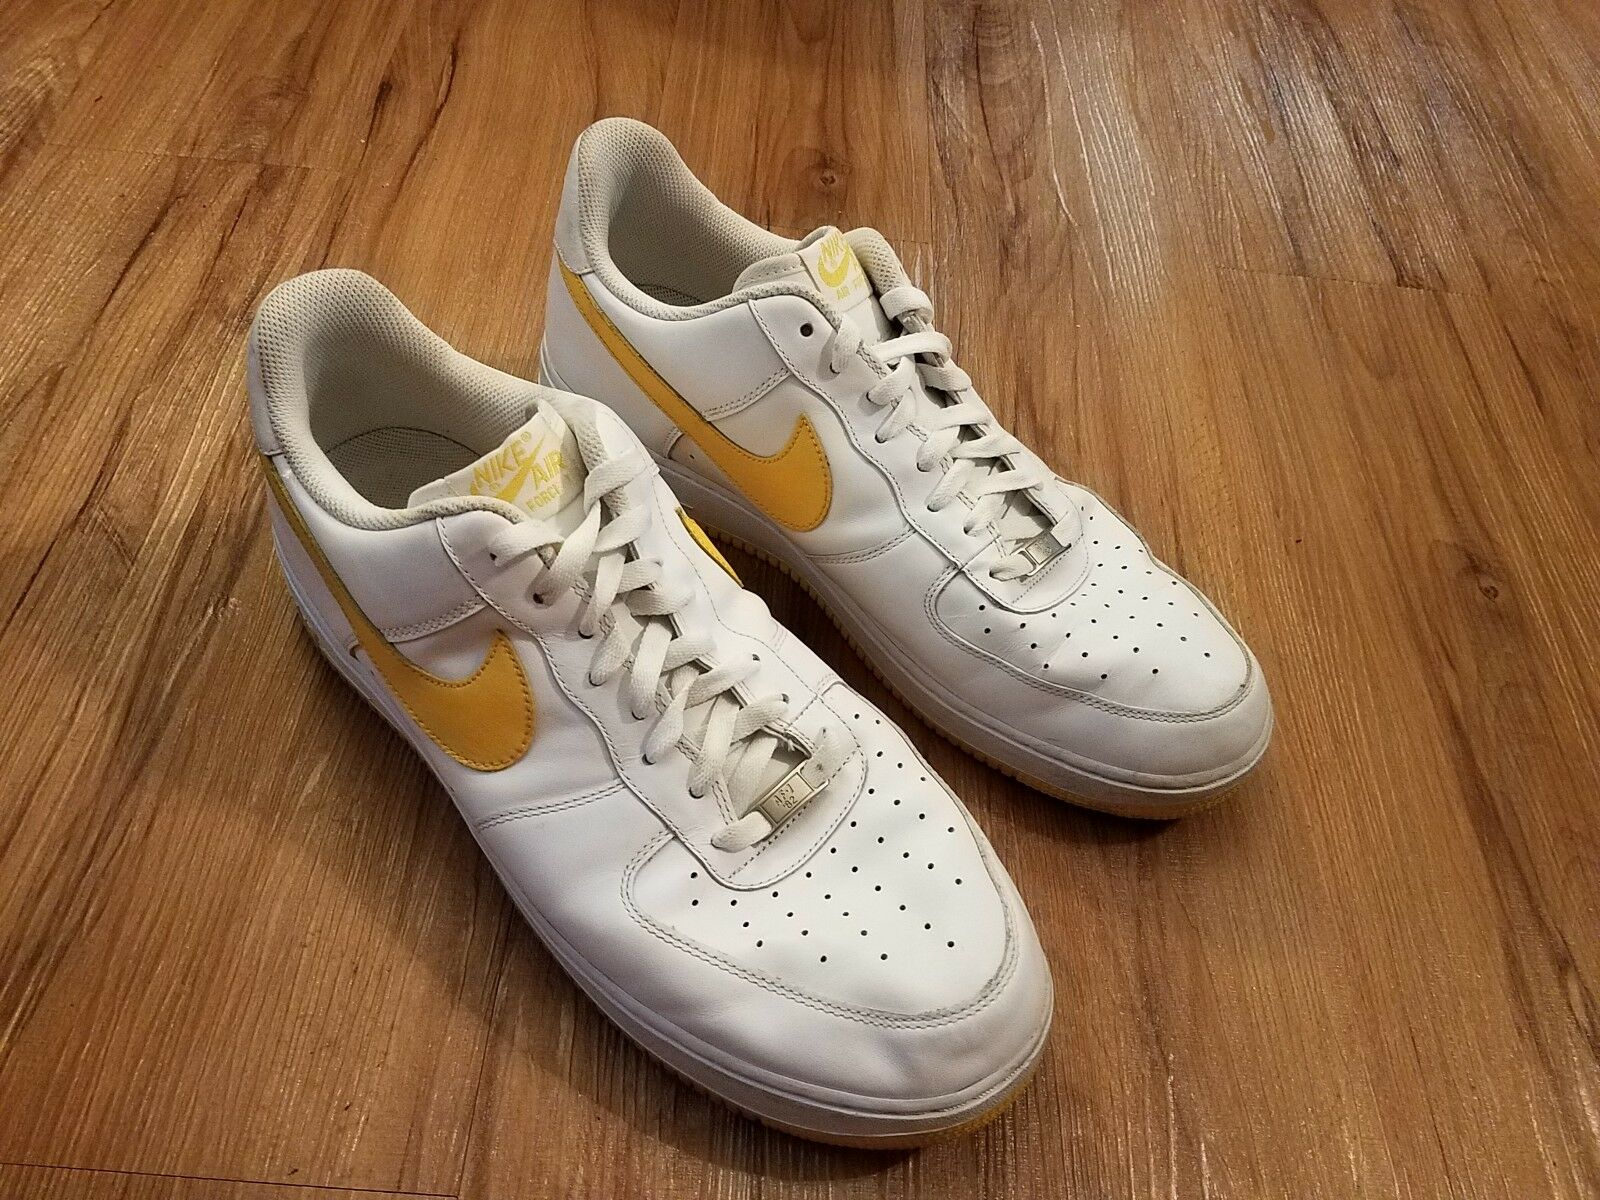 d135970ace Nike Air Force One 1 07 Af1 Low Shoes White Varsity Maize 315122 172 ...